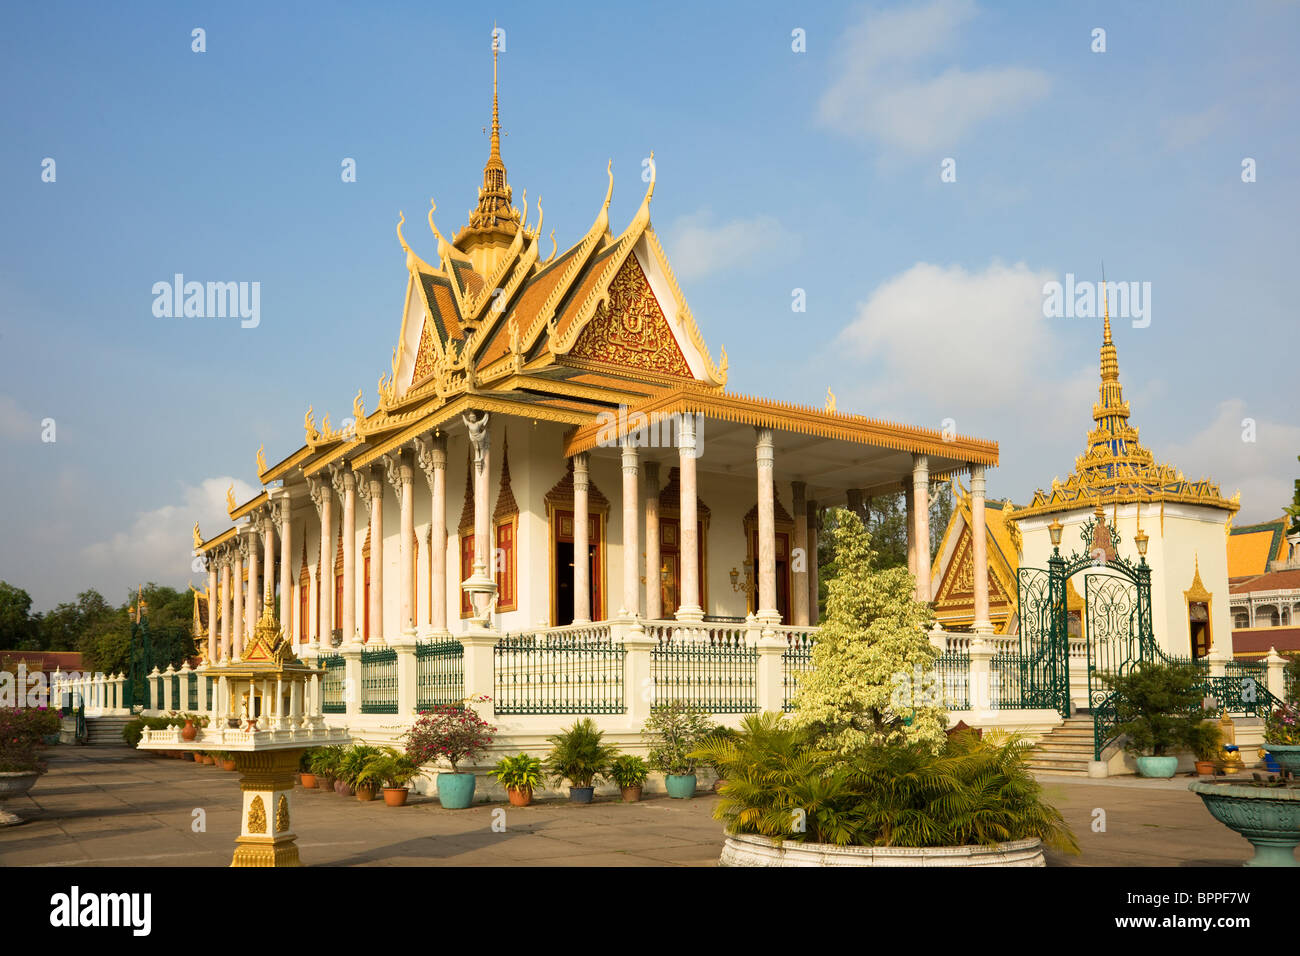 Wat Preah Keo Morokat is also known as the 'Silver Pagoda' the 'Temple of the Emerald Buddha.' located in Phnom - Stock Image